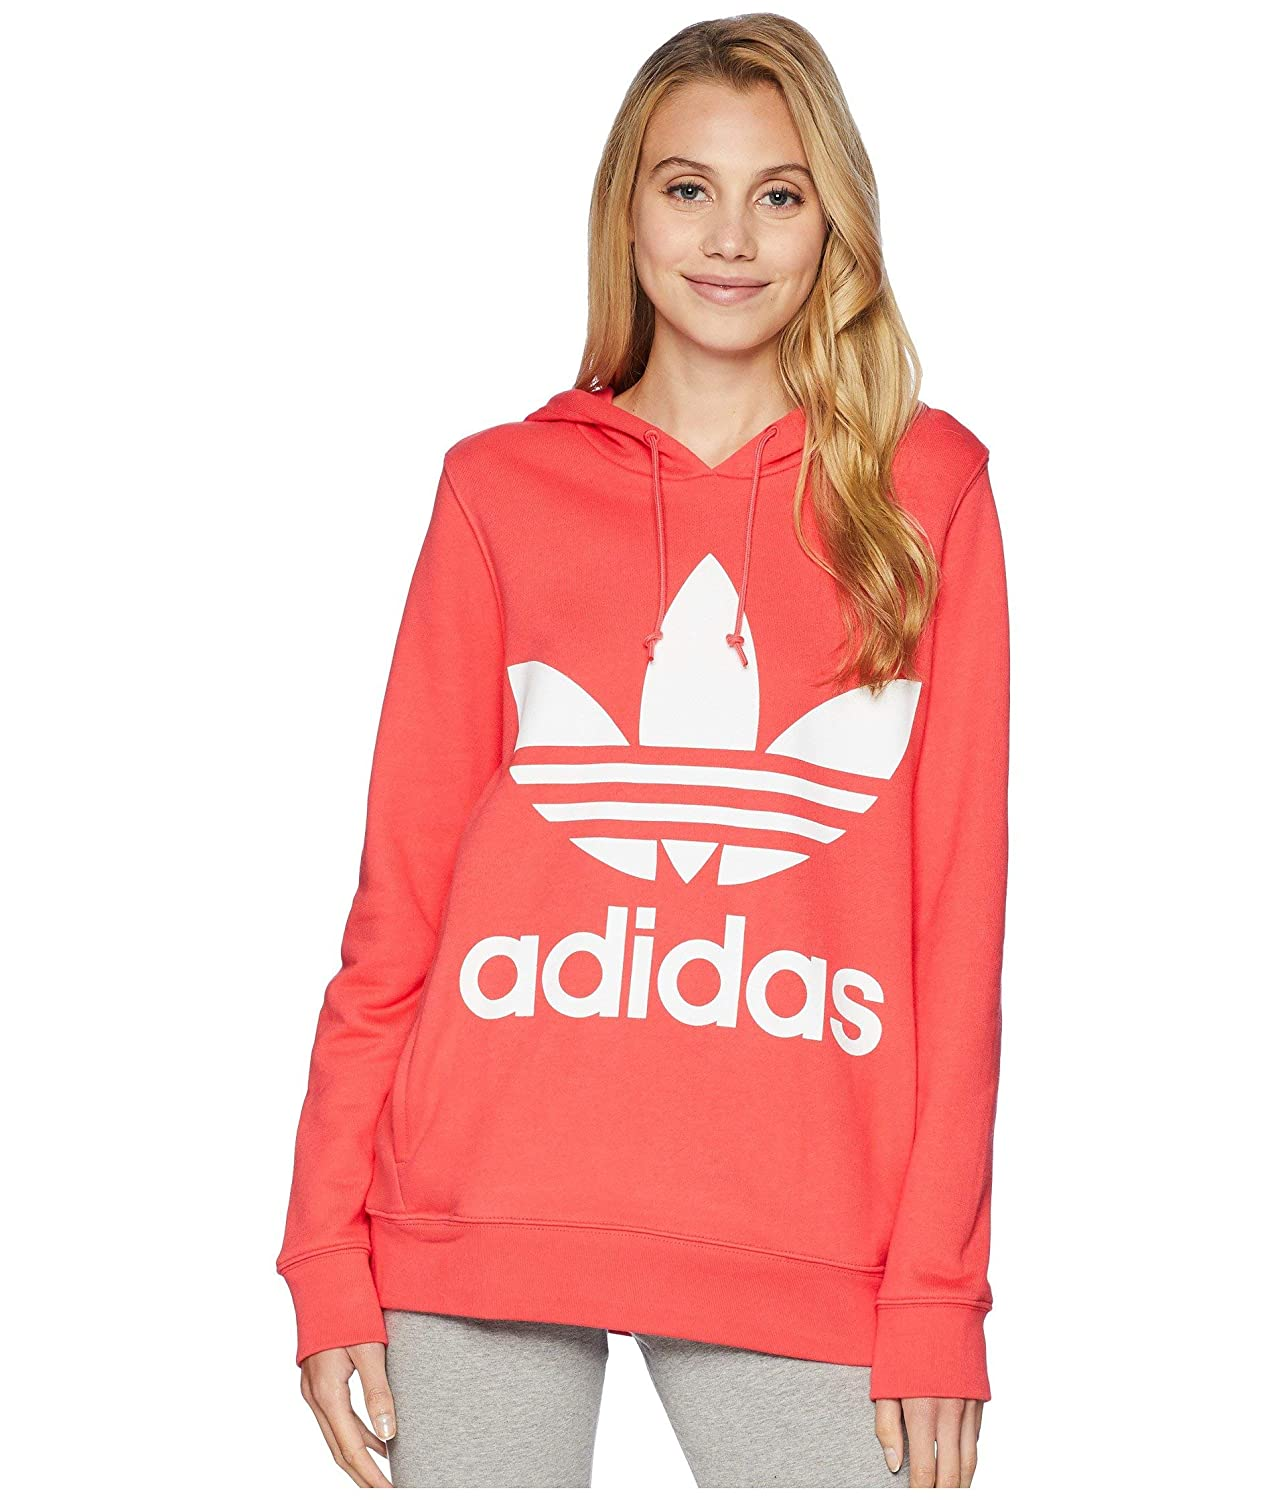 e81ff220 adidas Originals Women's Trefoil Hoodie, Core Pink, Medium